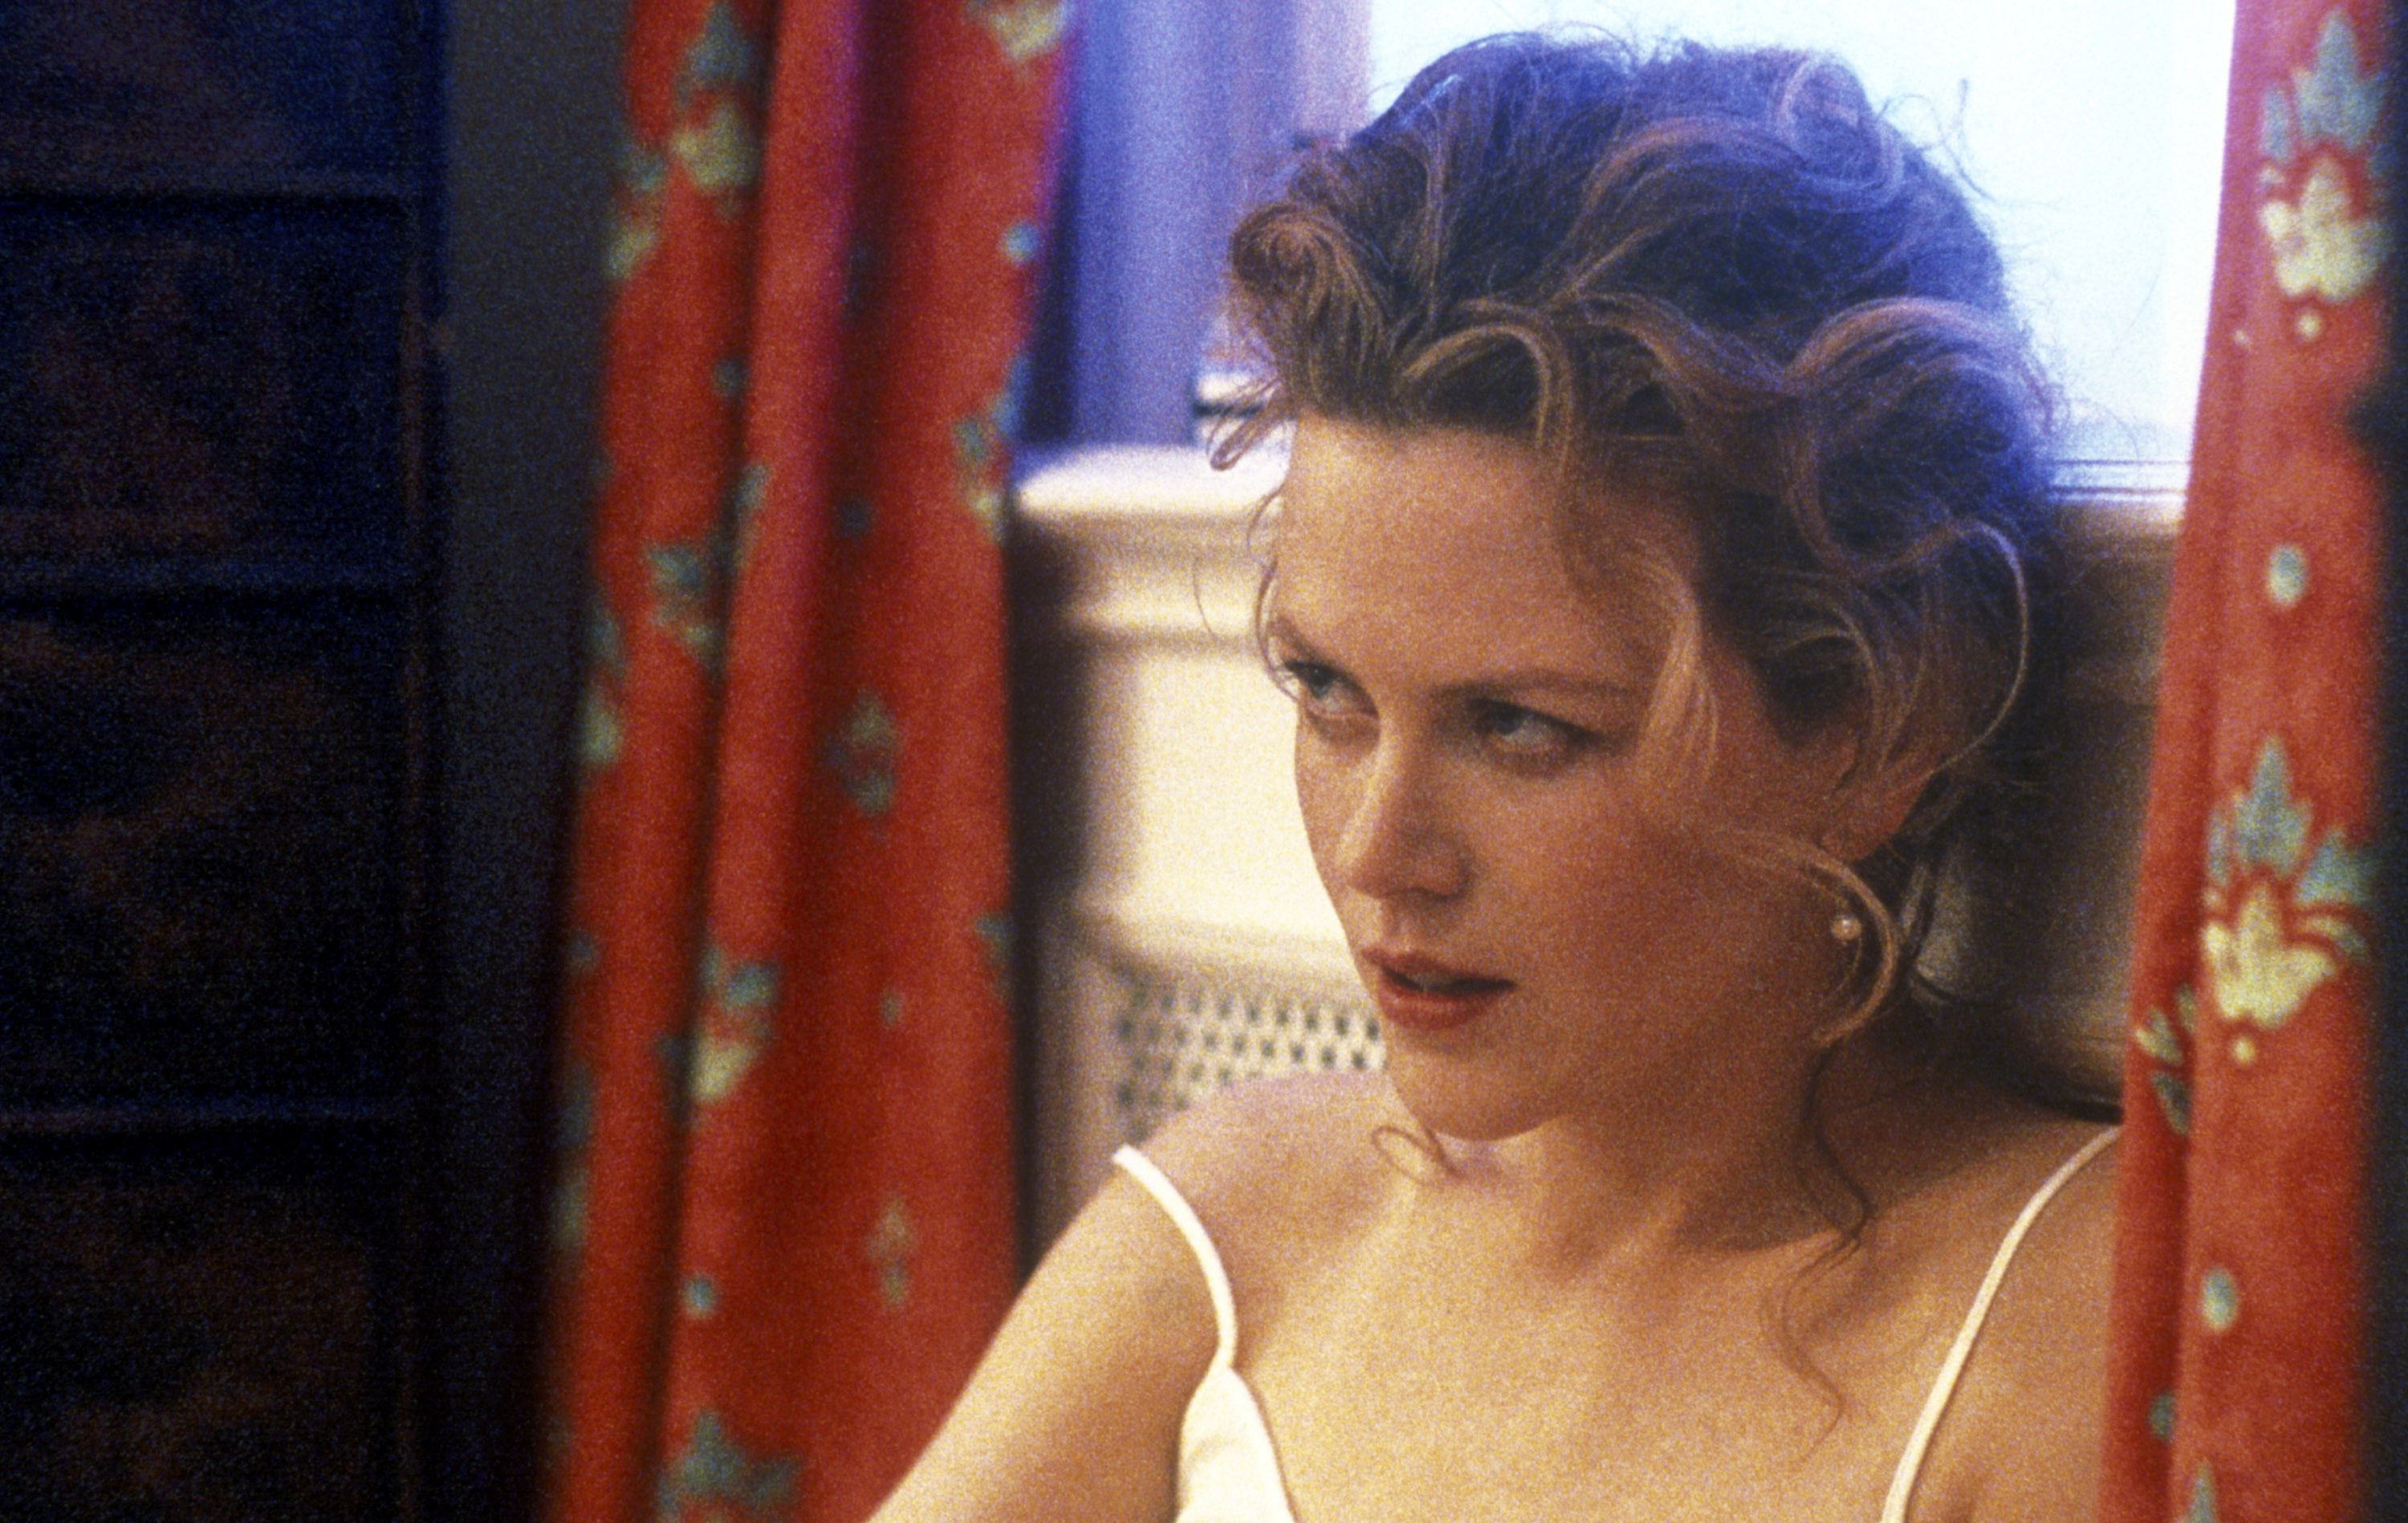 Stanley Kubrick's Eyes Wide Shut to return to the big screen this Autumn to mark its 20th anniversary